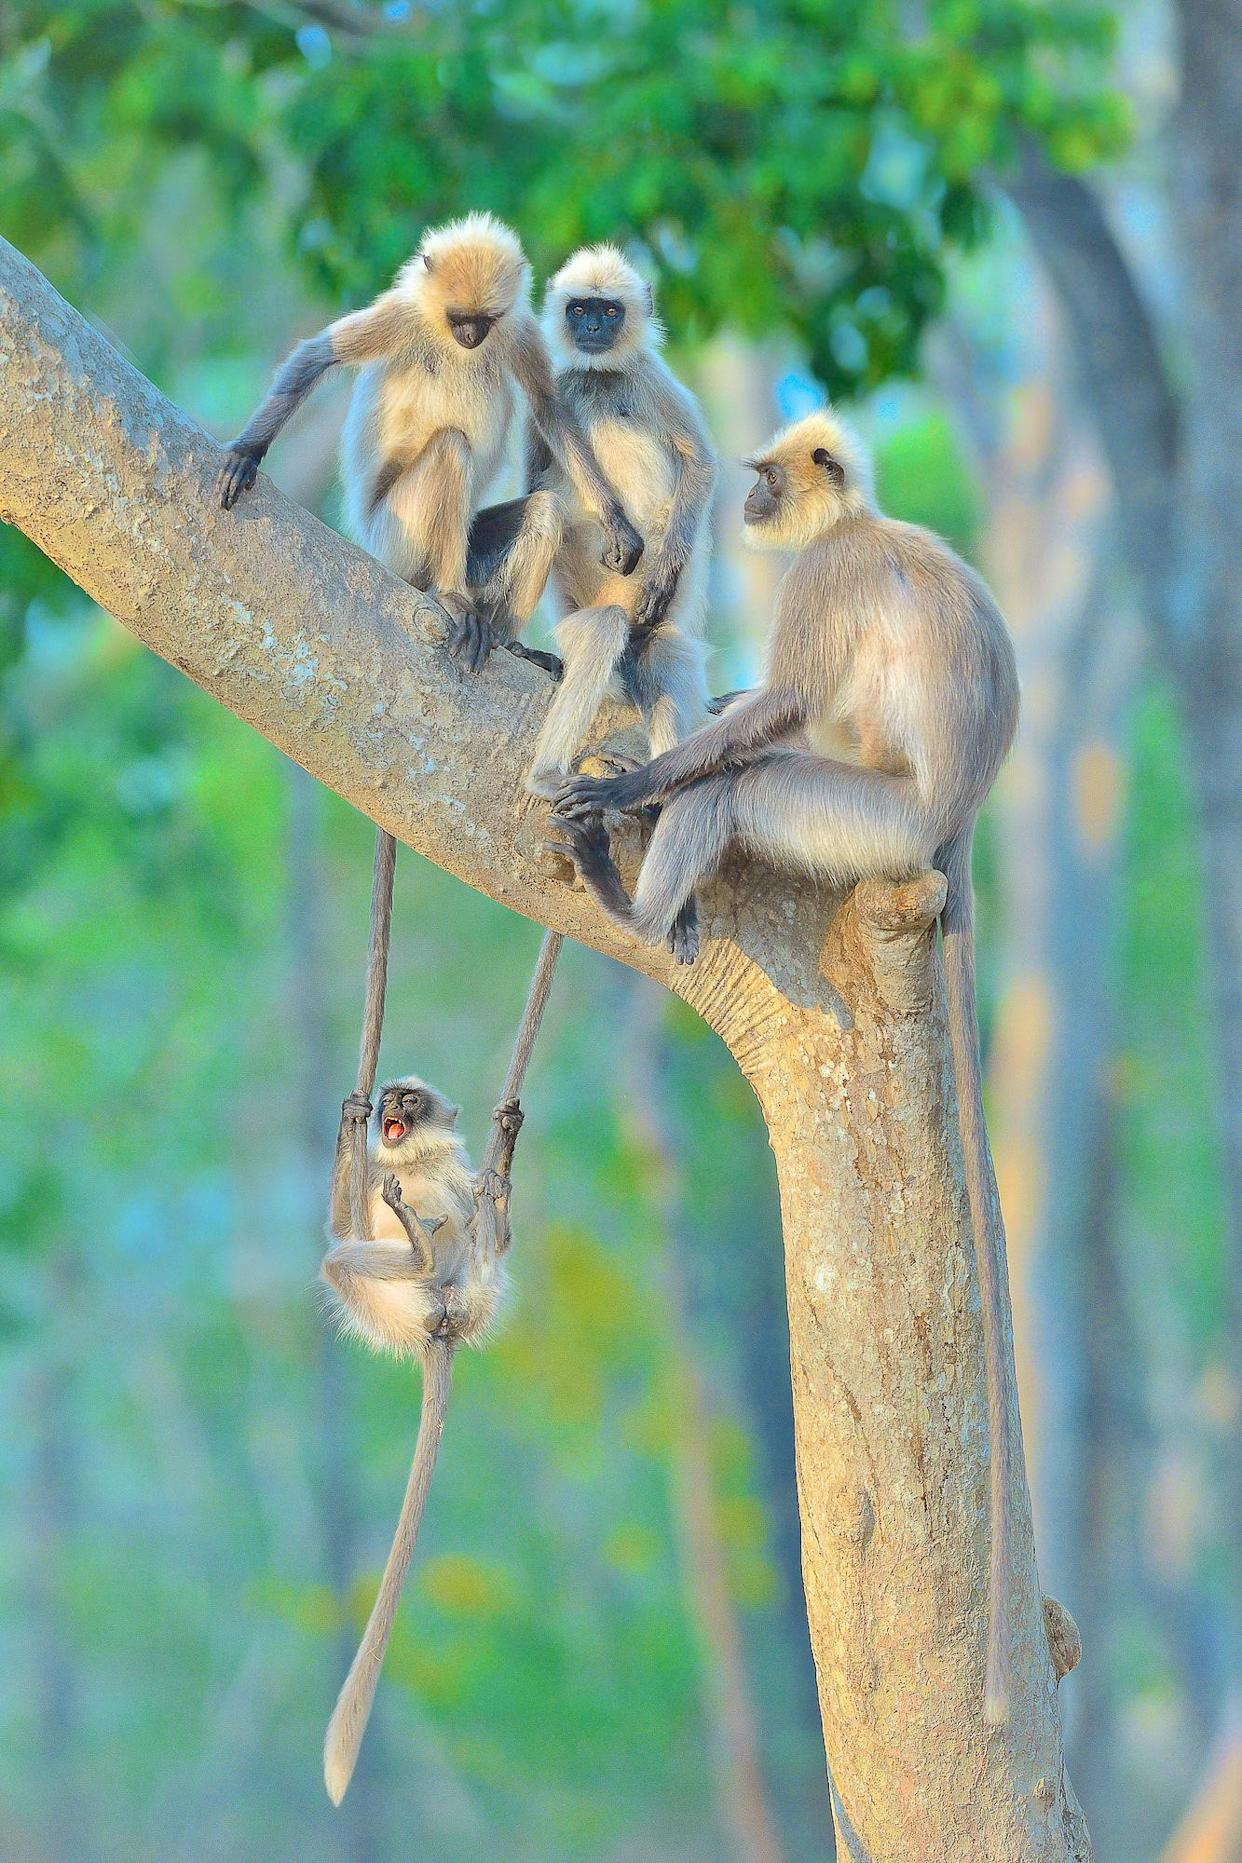 A group of grey langurs